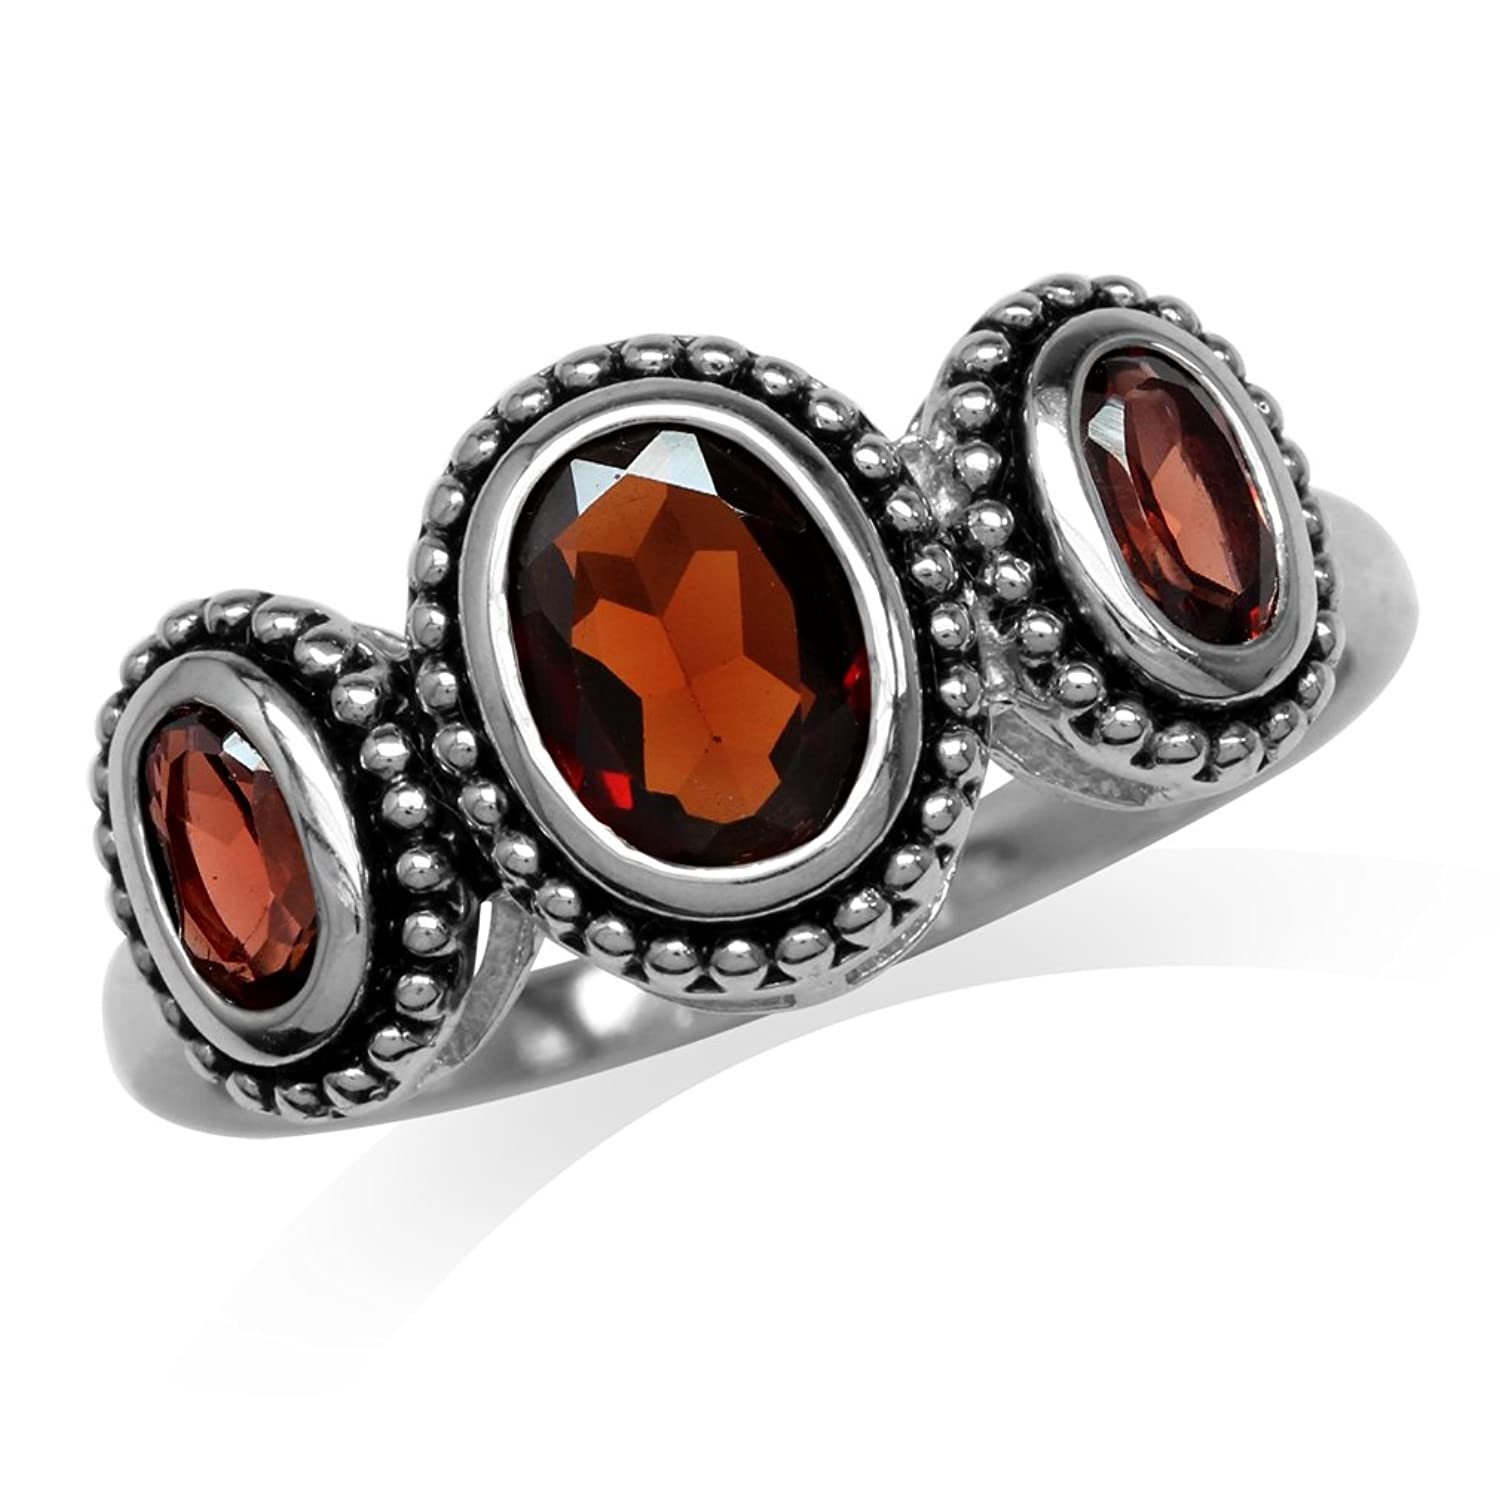 1.52ct. 3-Stone Natural Oval Shape Garnet 925 Sterling Silver Bali/Balinese Style Ring